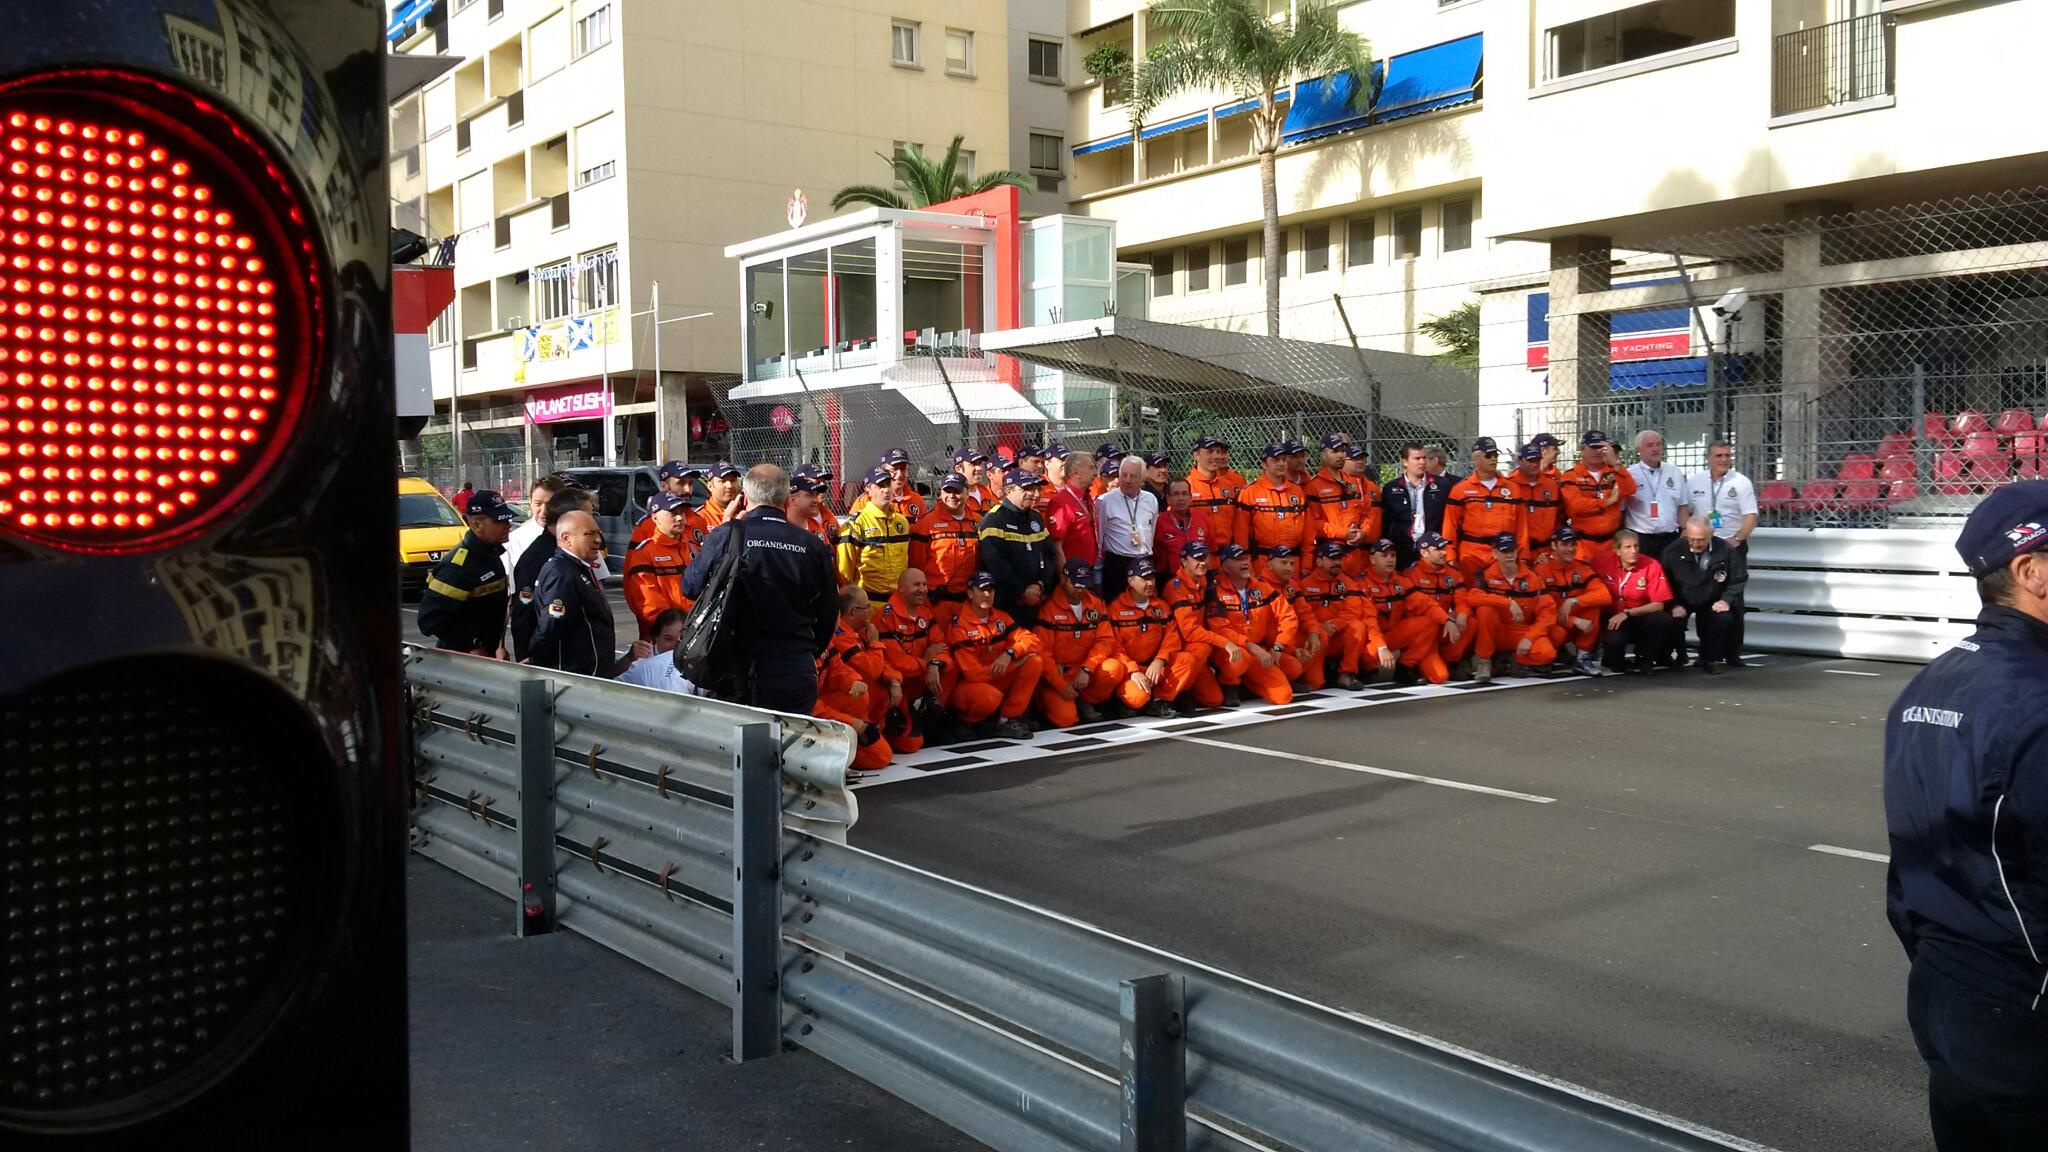 Quick morning team photo of a different kind with Charlie Whiting! #MonacoGP #TheFullMonte http://t.co/DsWHCNfjzk